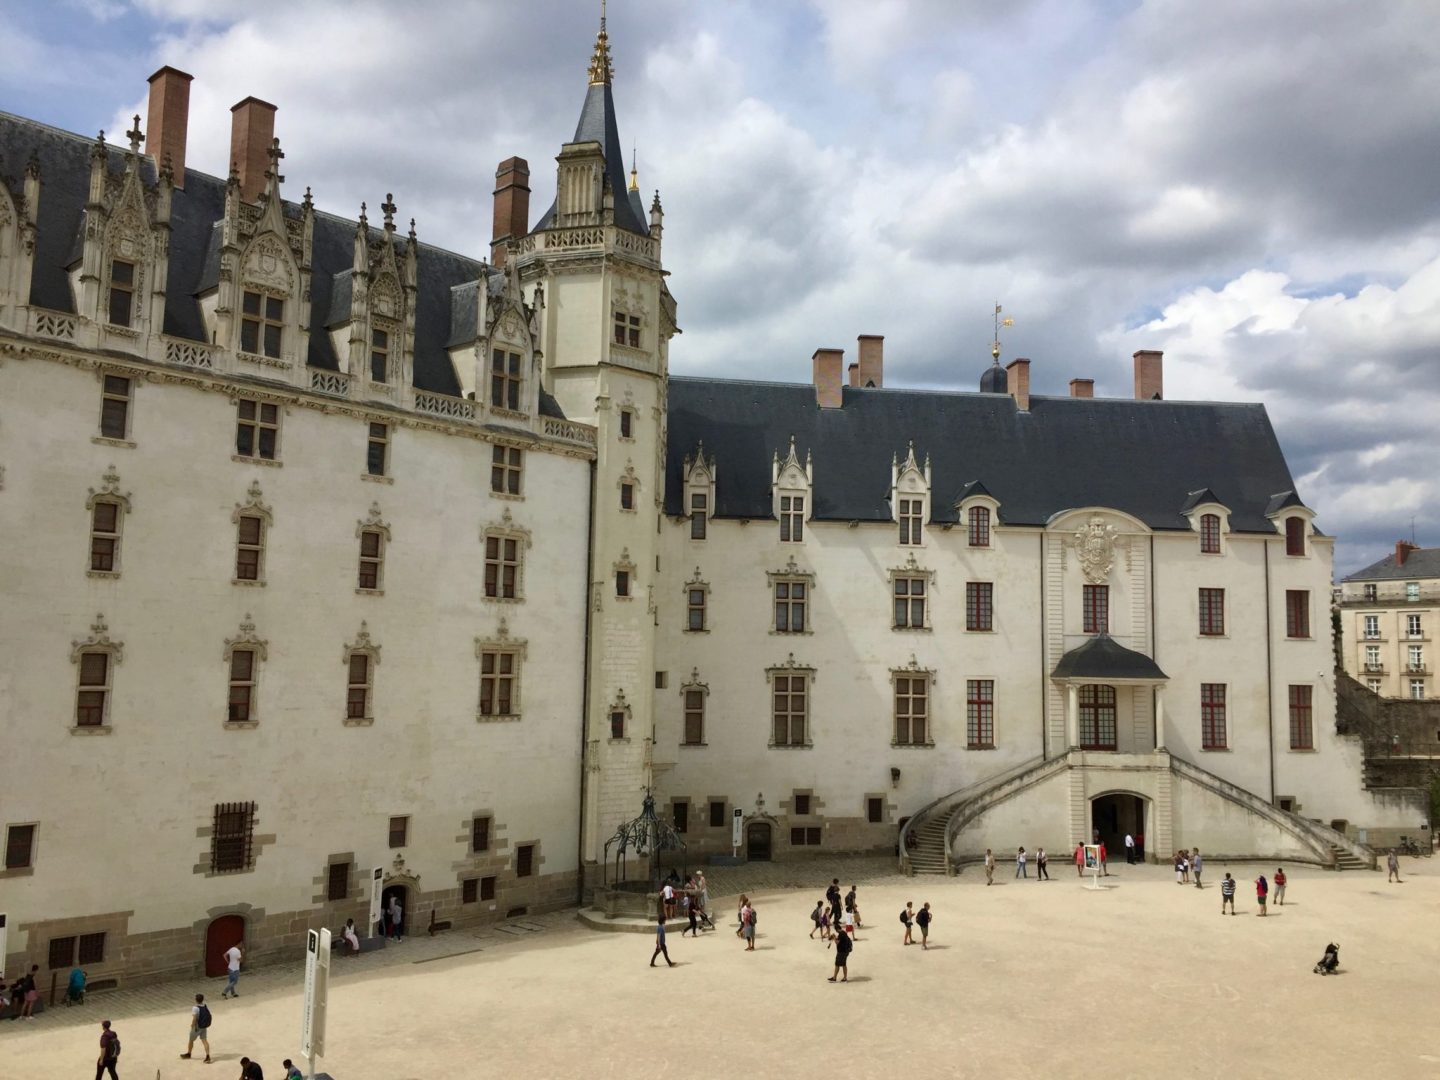 Castle of Duke of Brittany - 48 hours in Nantes with kids